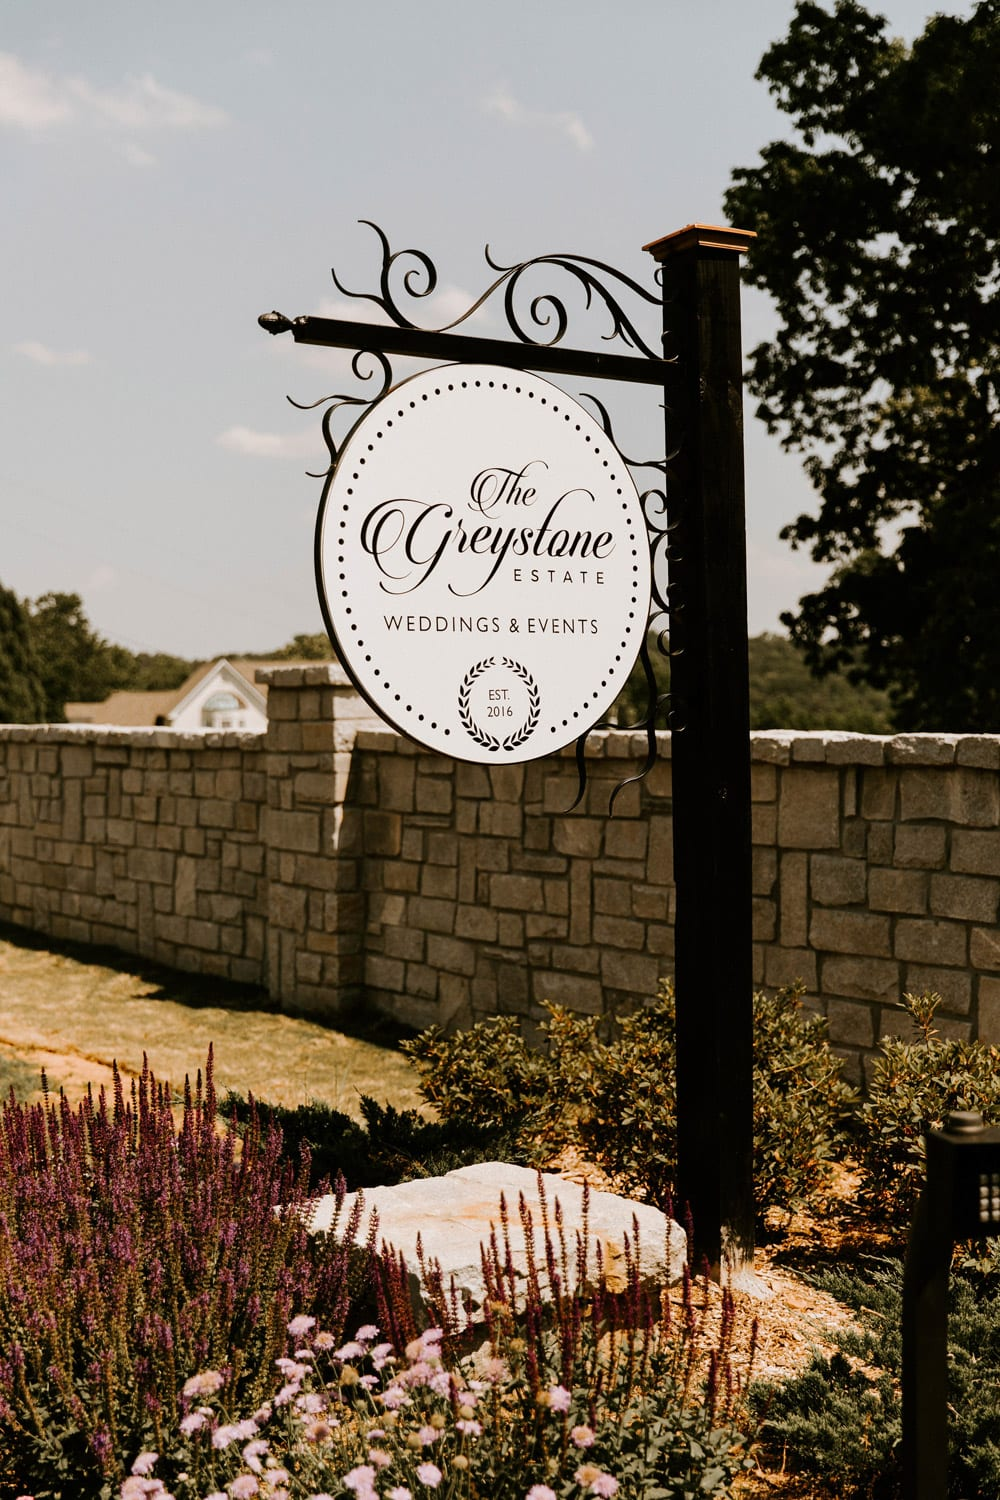 The sign to The Greystone Estate